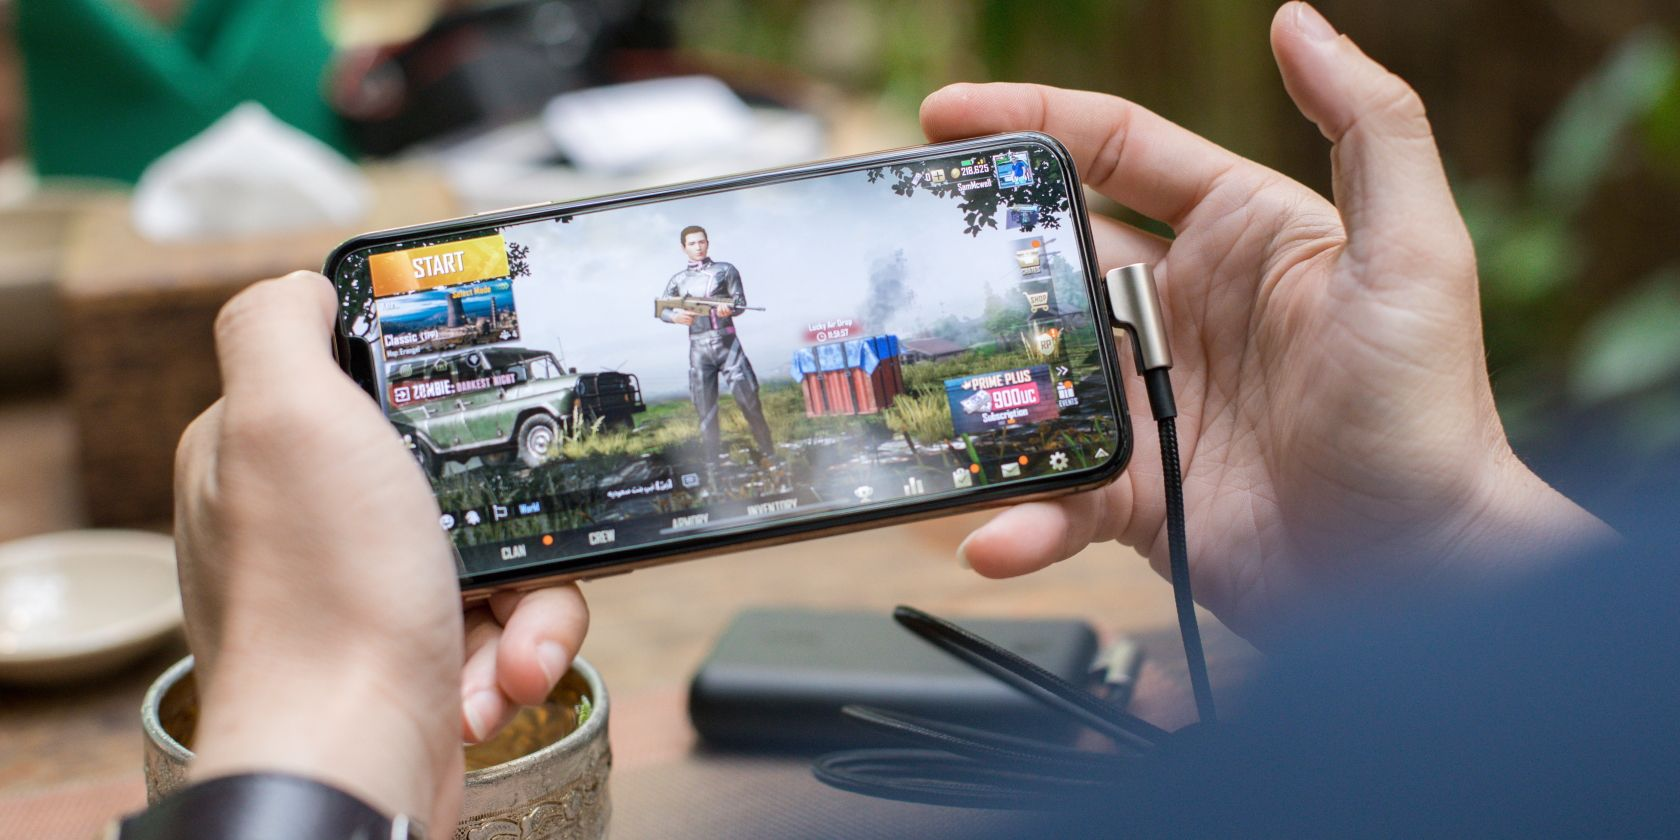 Do Android Phones Make Good Handheld Game Consoles?